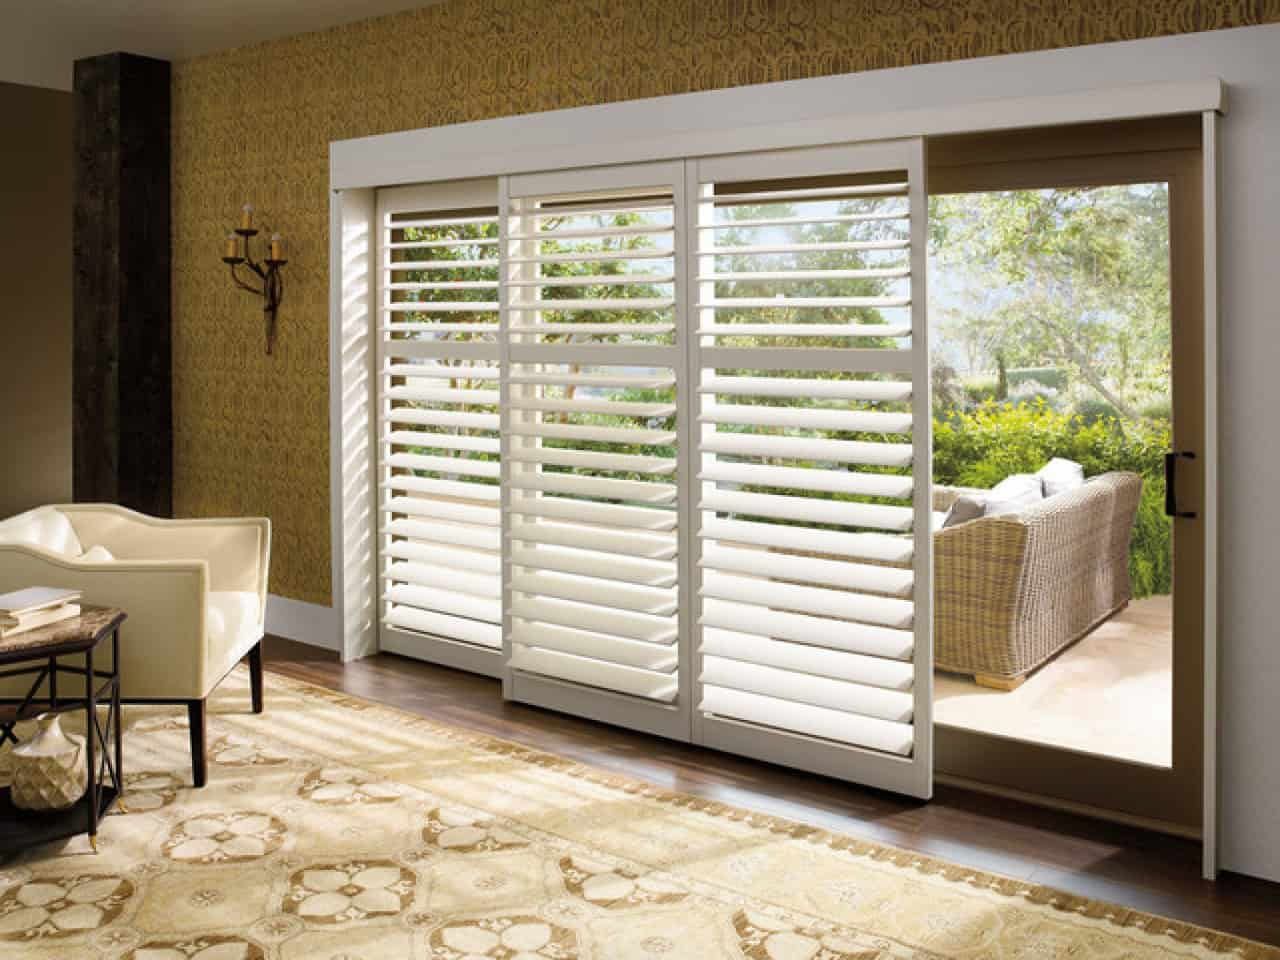 sliding glass door coverings Window Treatments for Sliding Glass Doors (IDEAS & TIPS) sliding glass door coverings